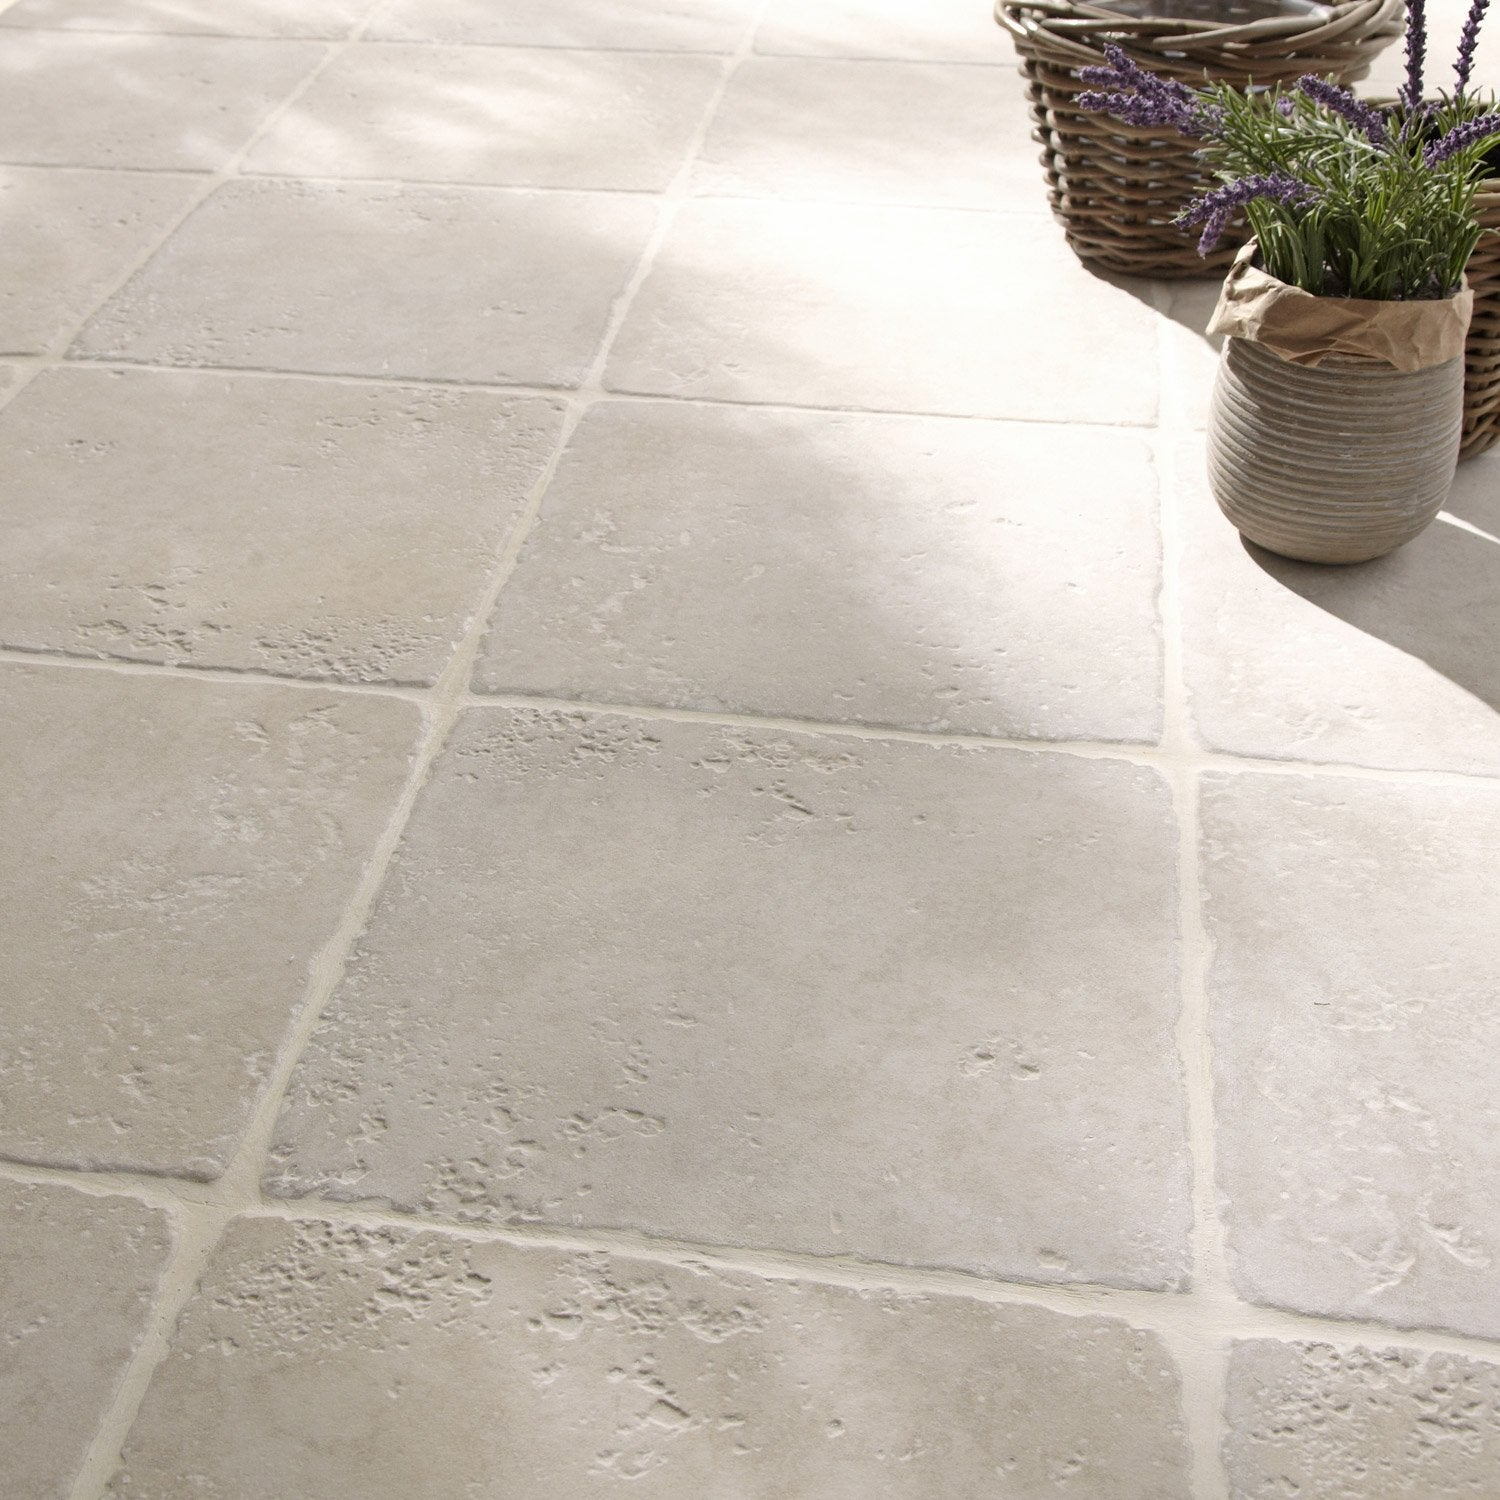 Carrelage blanc effet pierre toscane x cm for Carrelage imitation travertin interieur